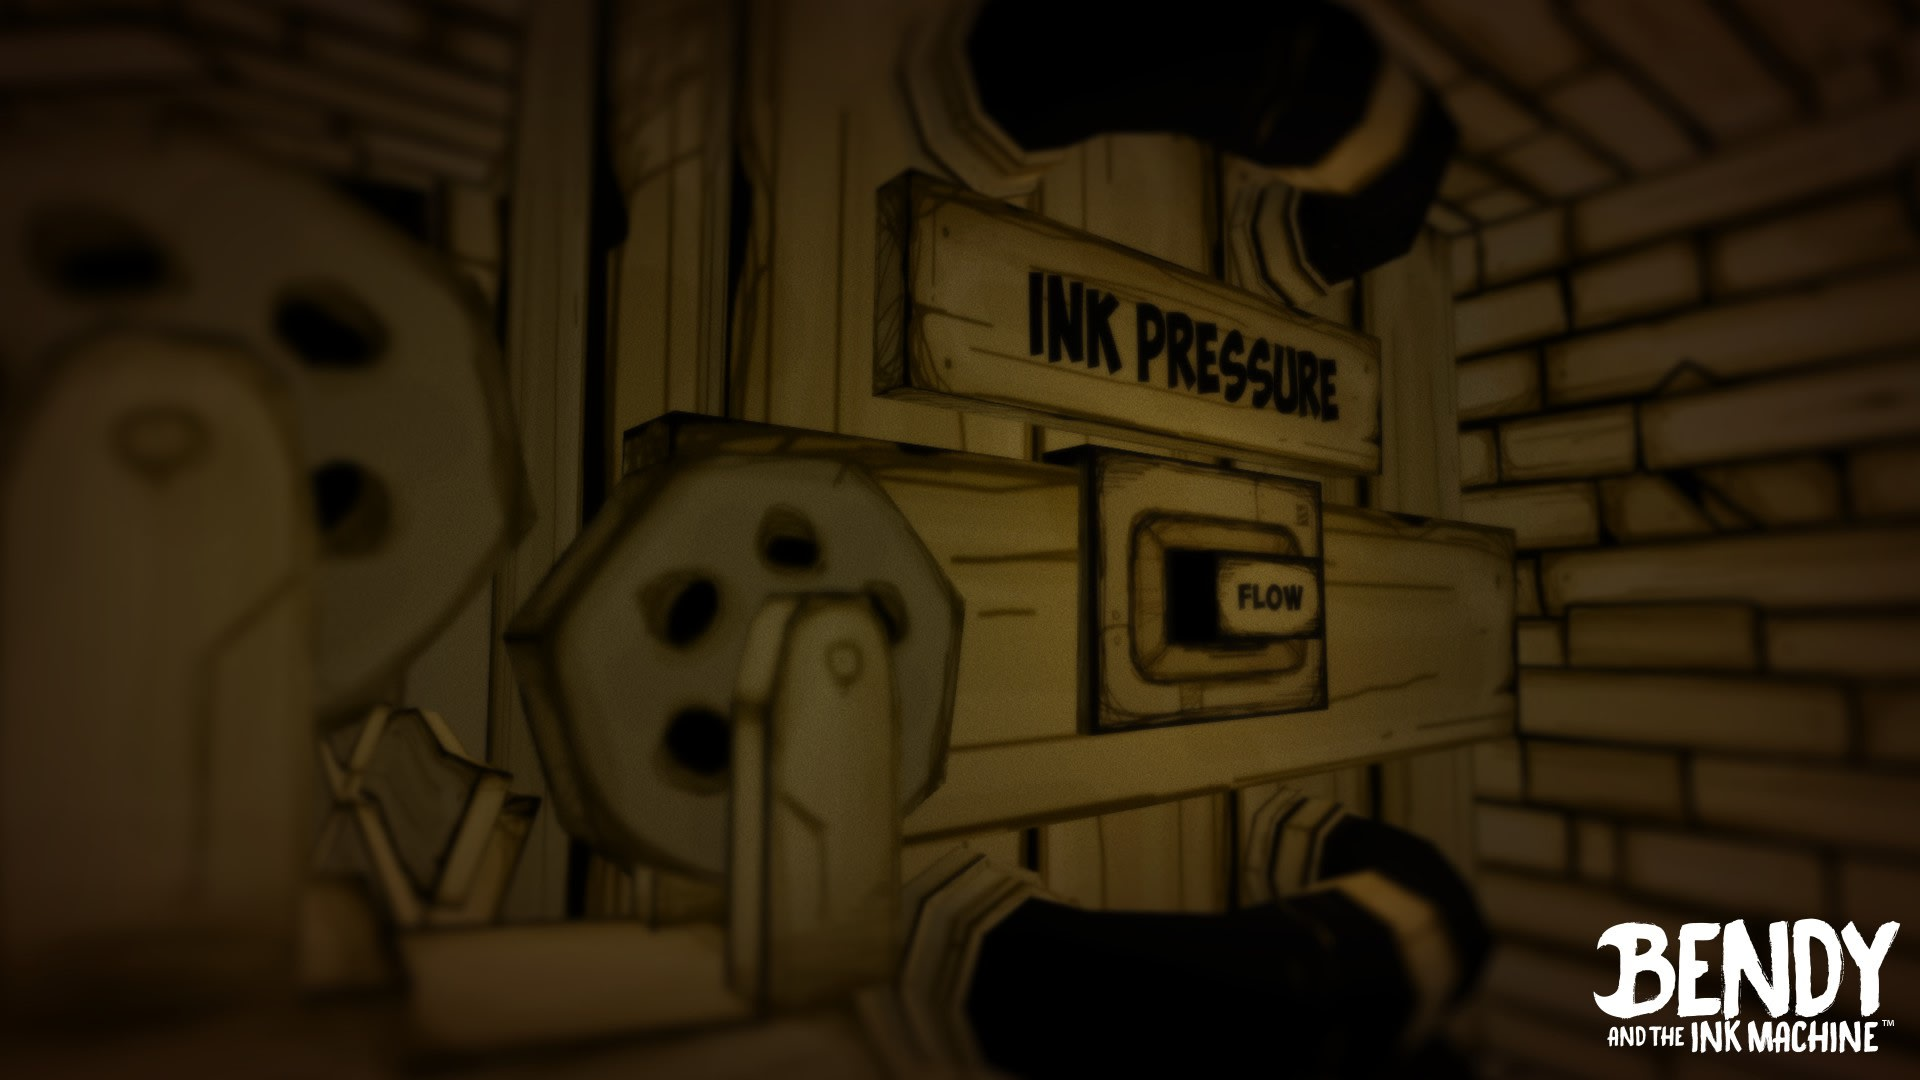 bendy bendy and the ink machine